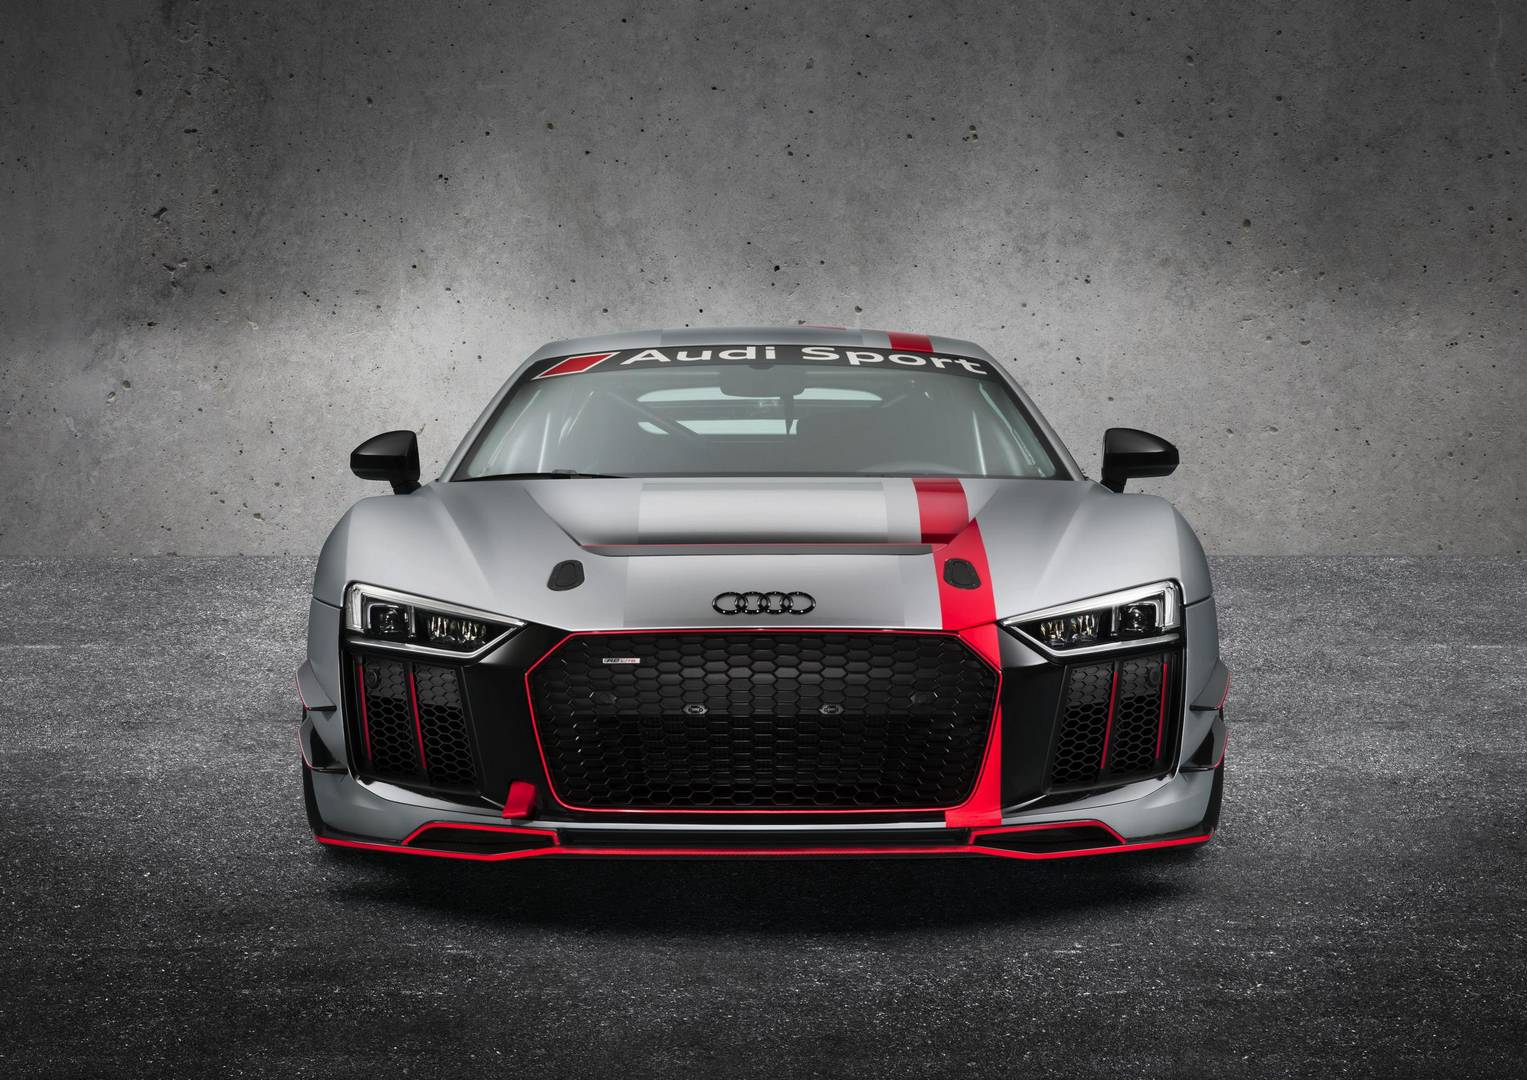 official audi r8 lms gt4 gtspirit. Black Bedroom Furniture Sets. Home Design Ideas